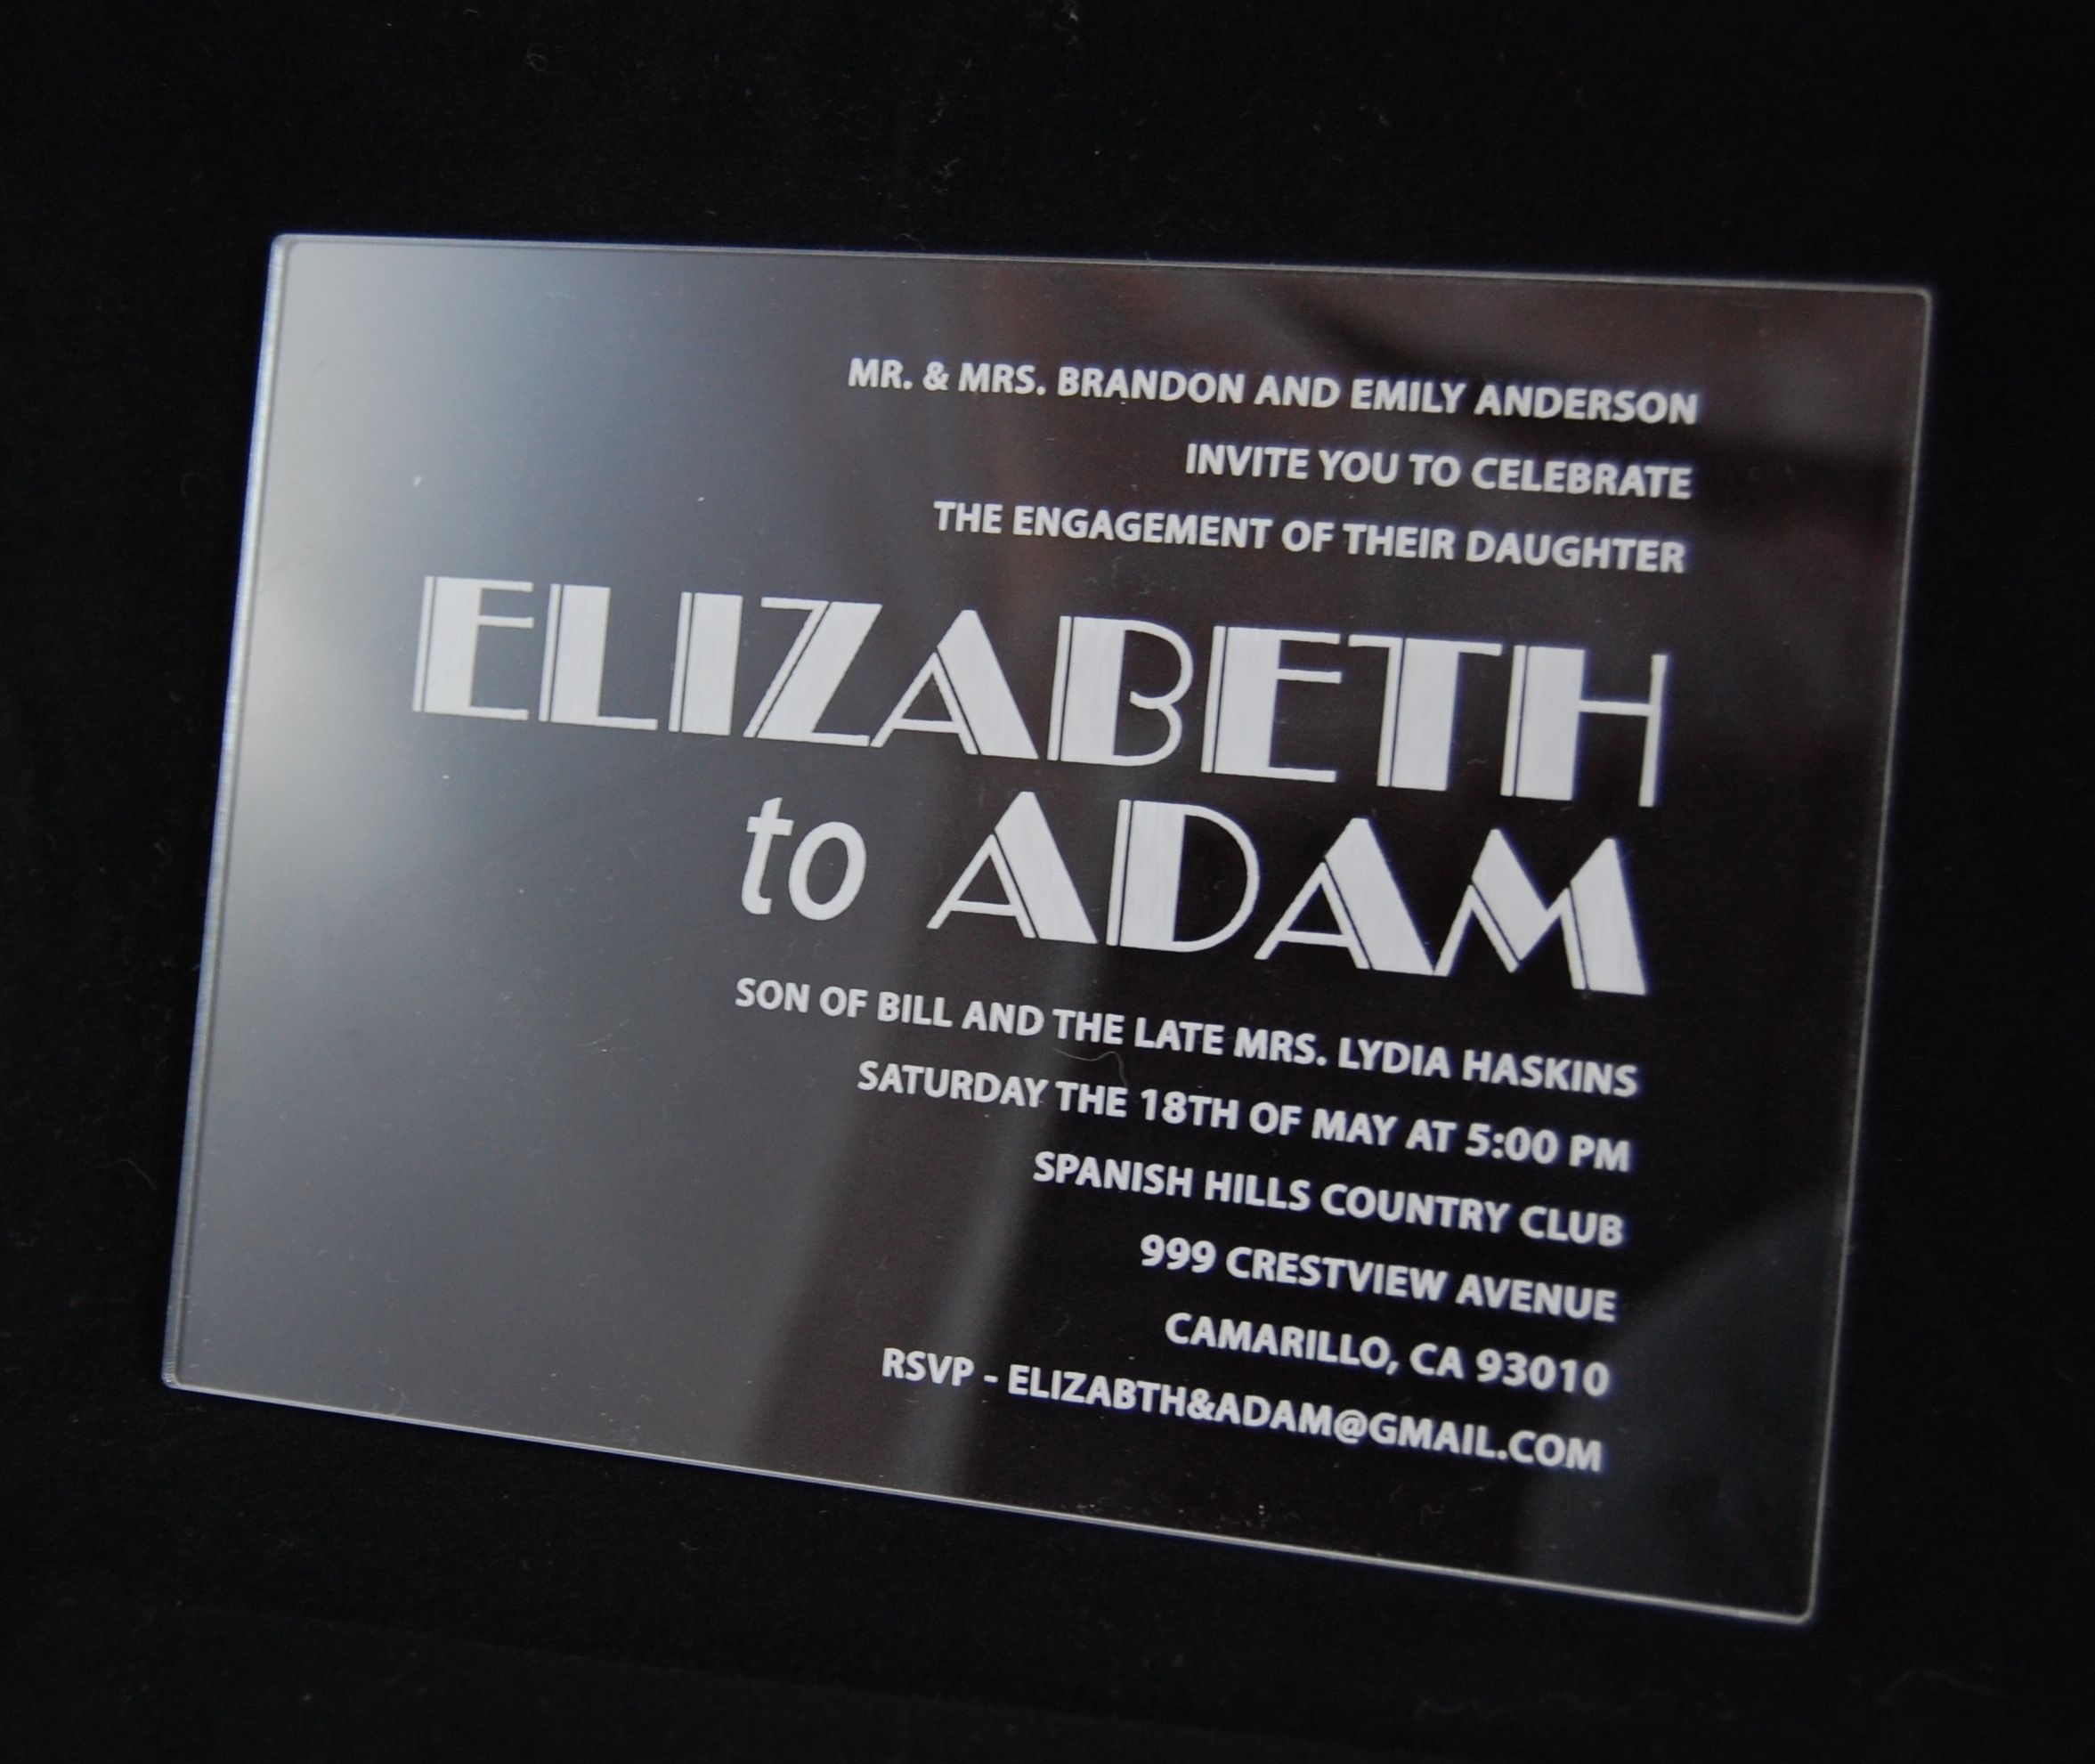 A Clear Acrylic Wedding Invitation Is A Great Alternative To Boring Paper # Acrylic #wedding